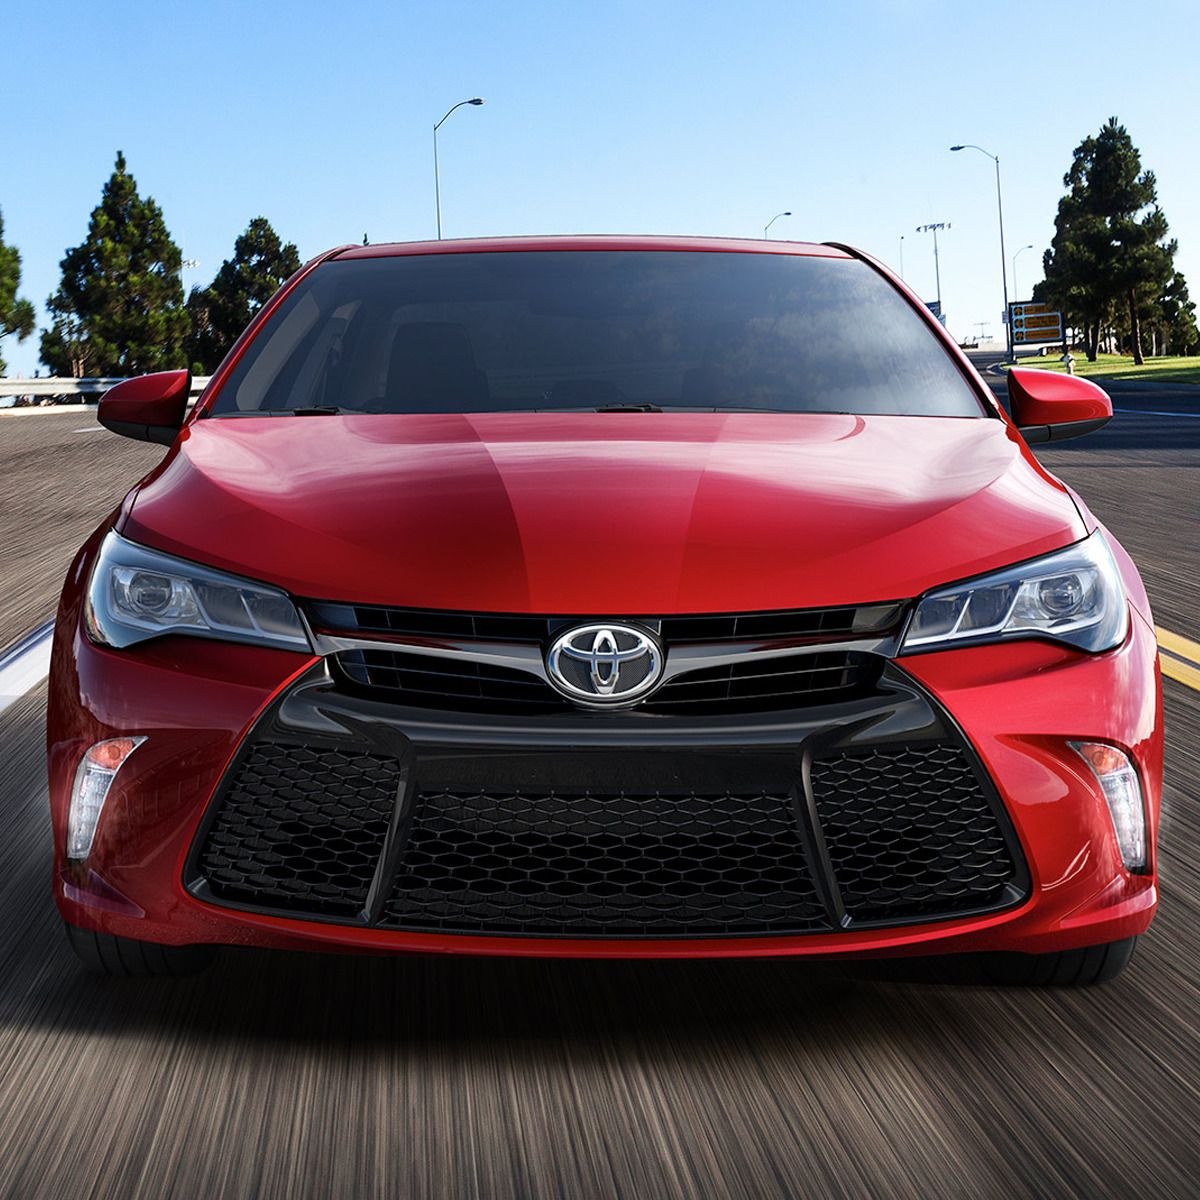 Toyota Camry (With images) Camry 2015, 2015 toyota camry